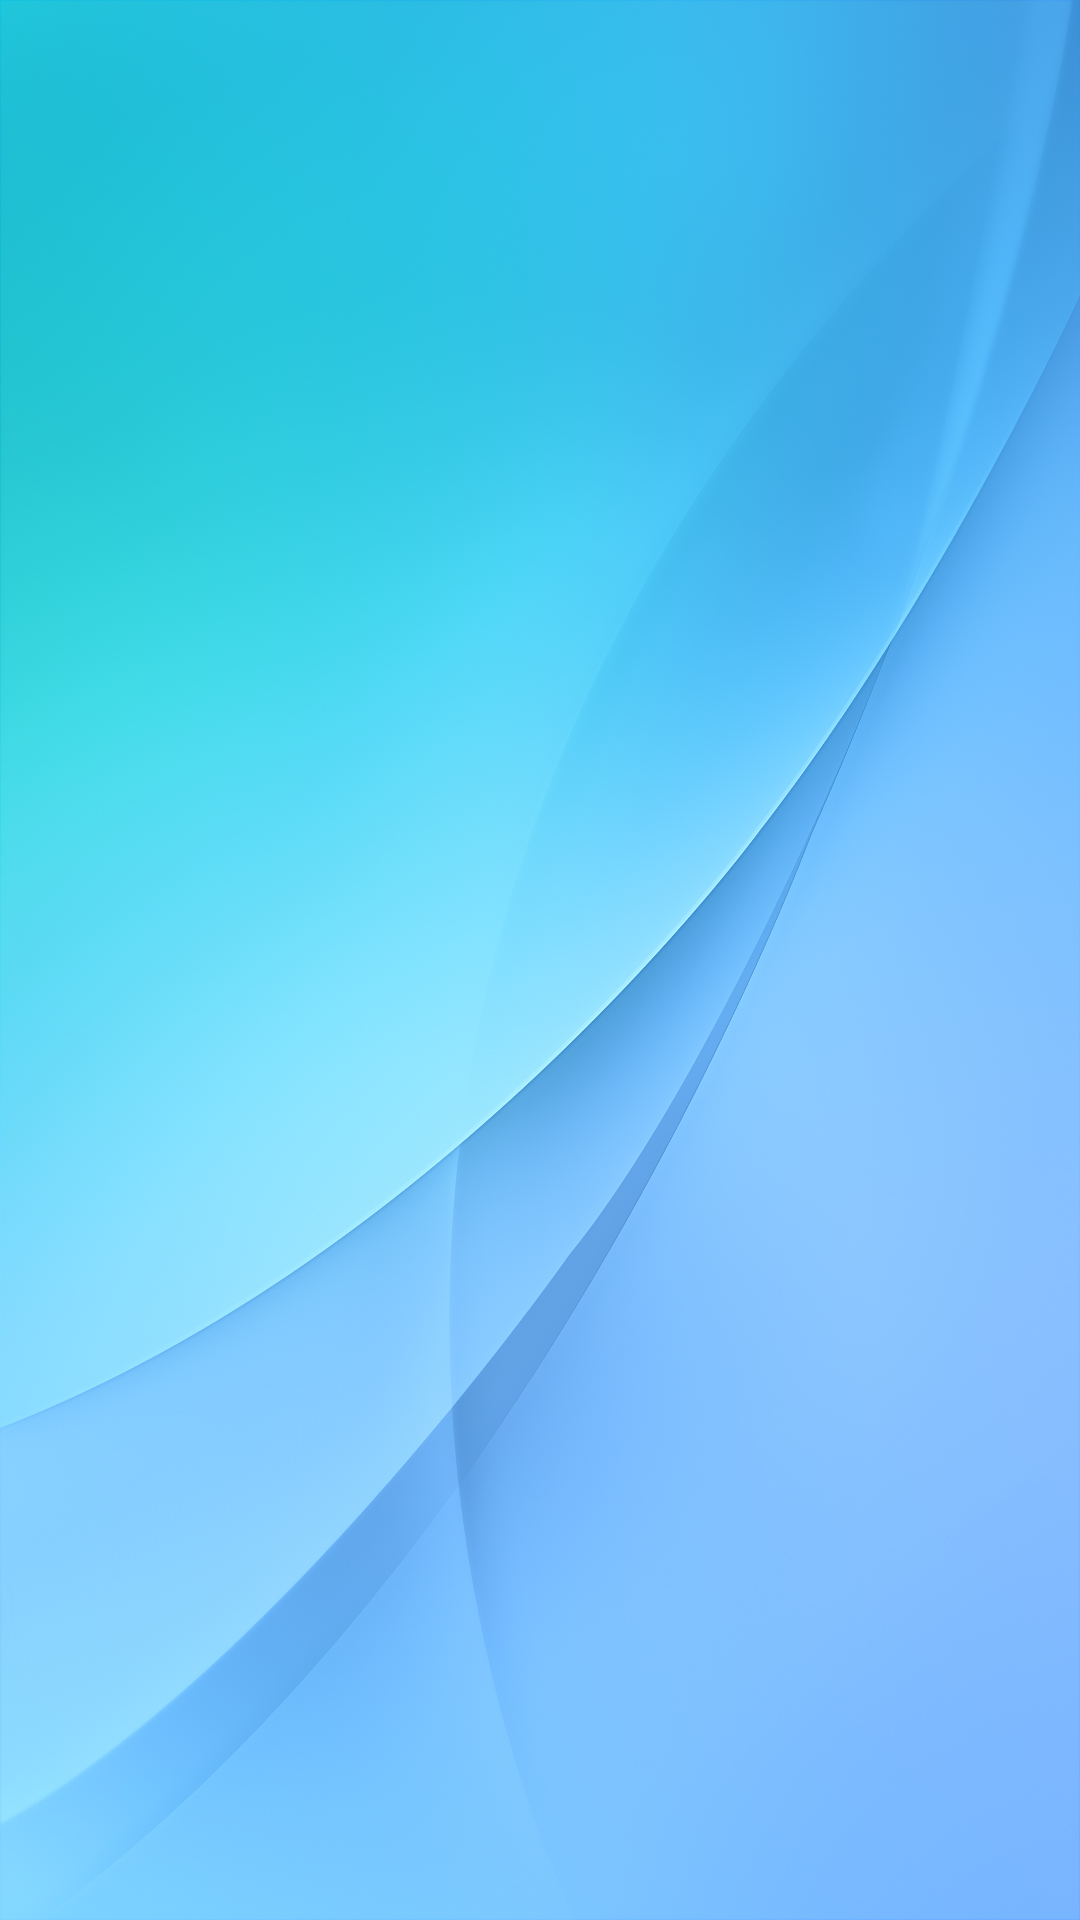 Wallpaper Xiaomi Redmi 5a